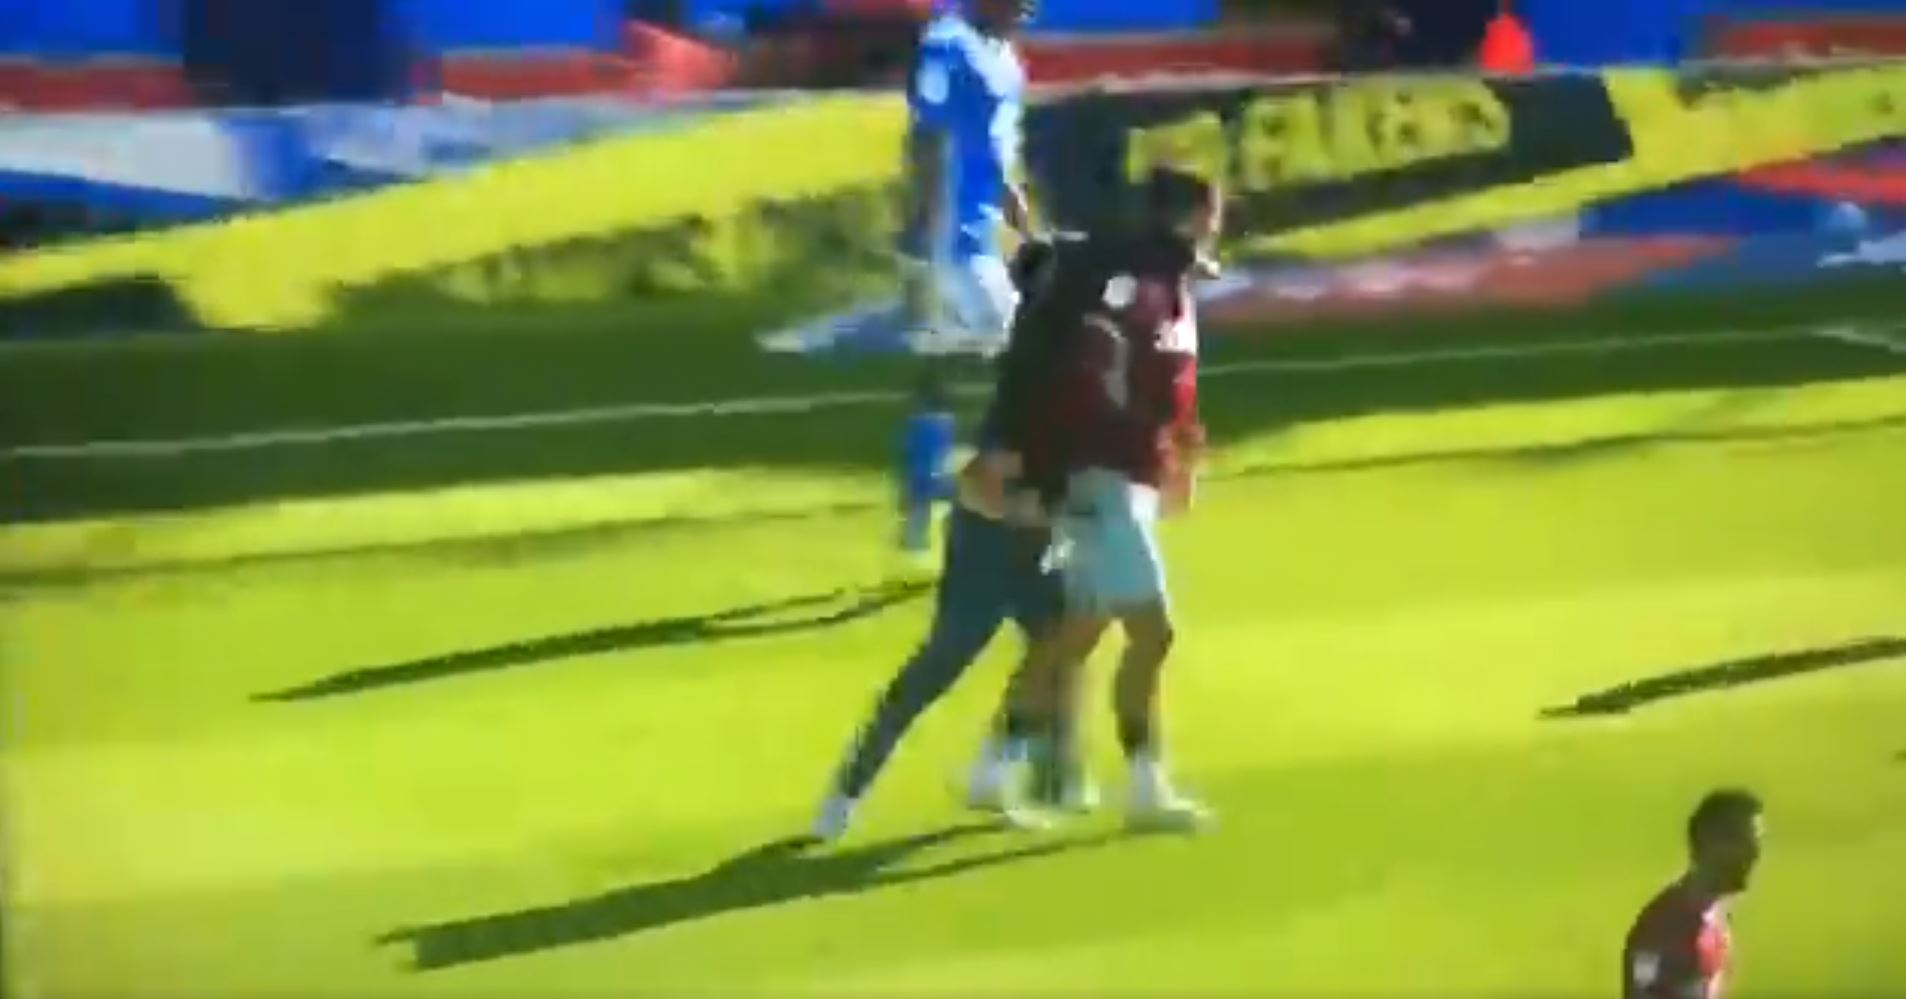 WATCH: Birmingham Fan Runs Onto The Pitch And Punches Jack Grealish In The Face. DISGUSTING!